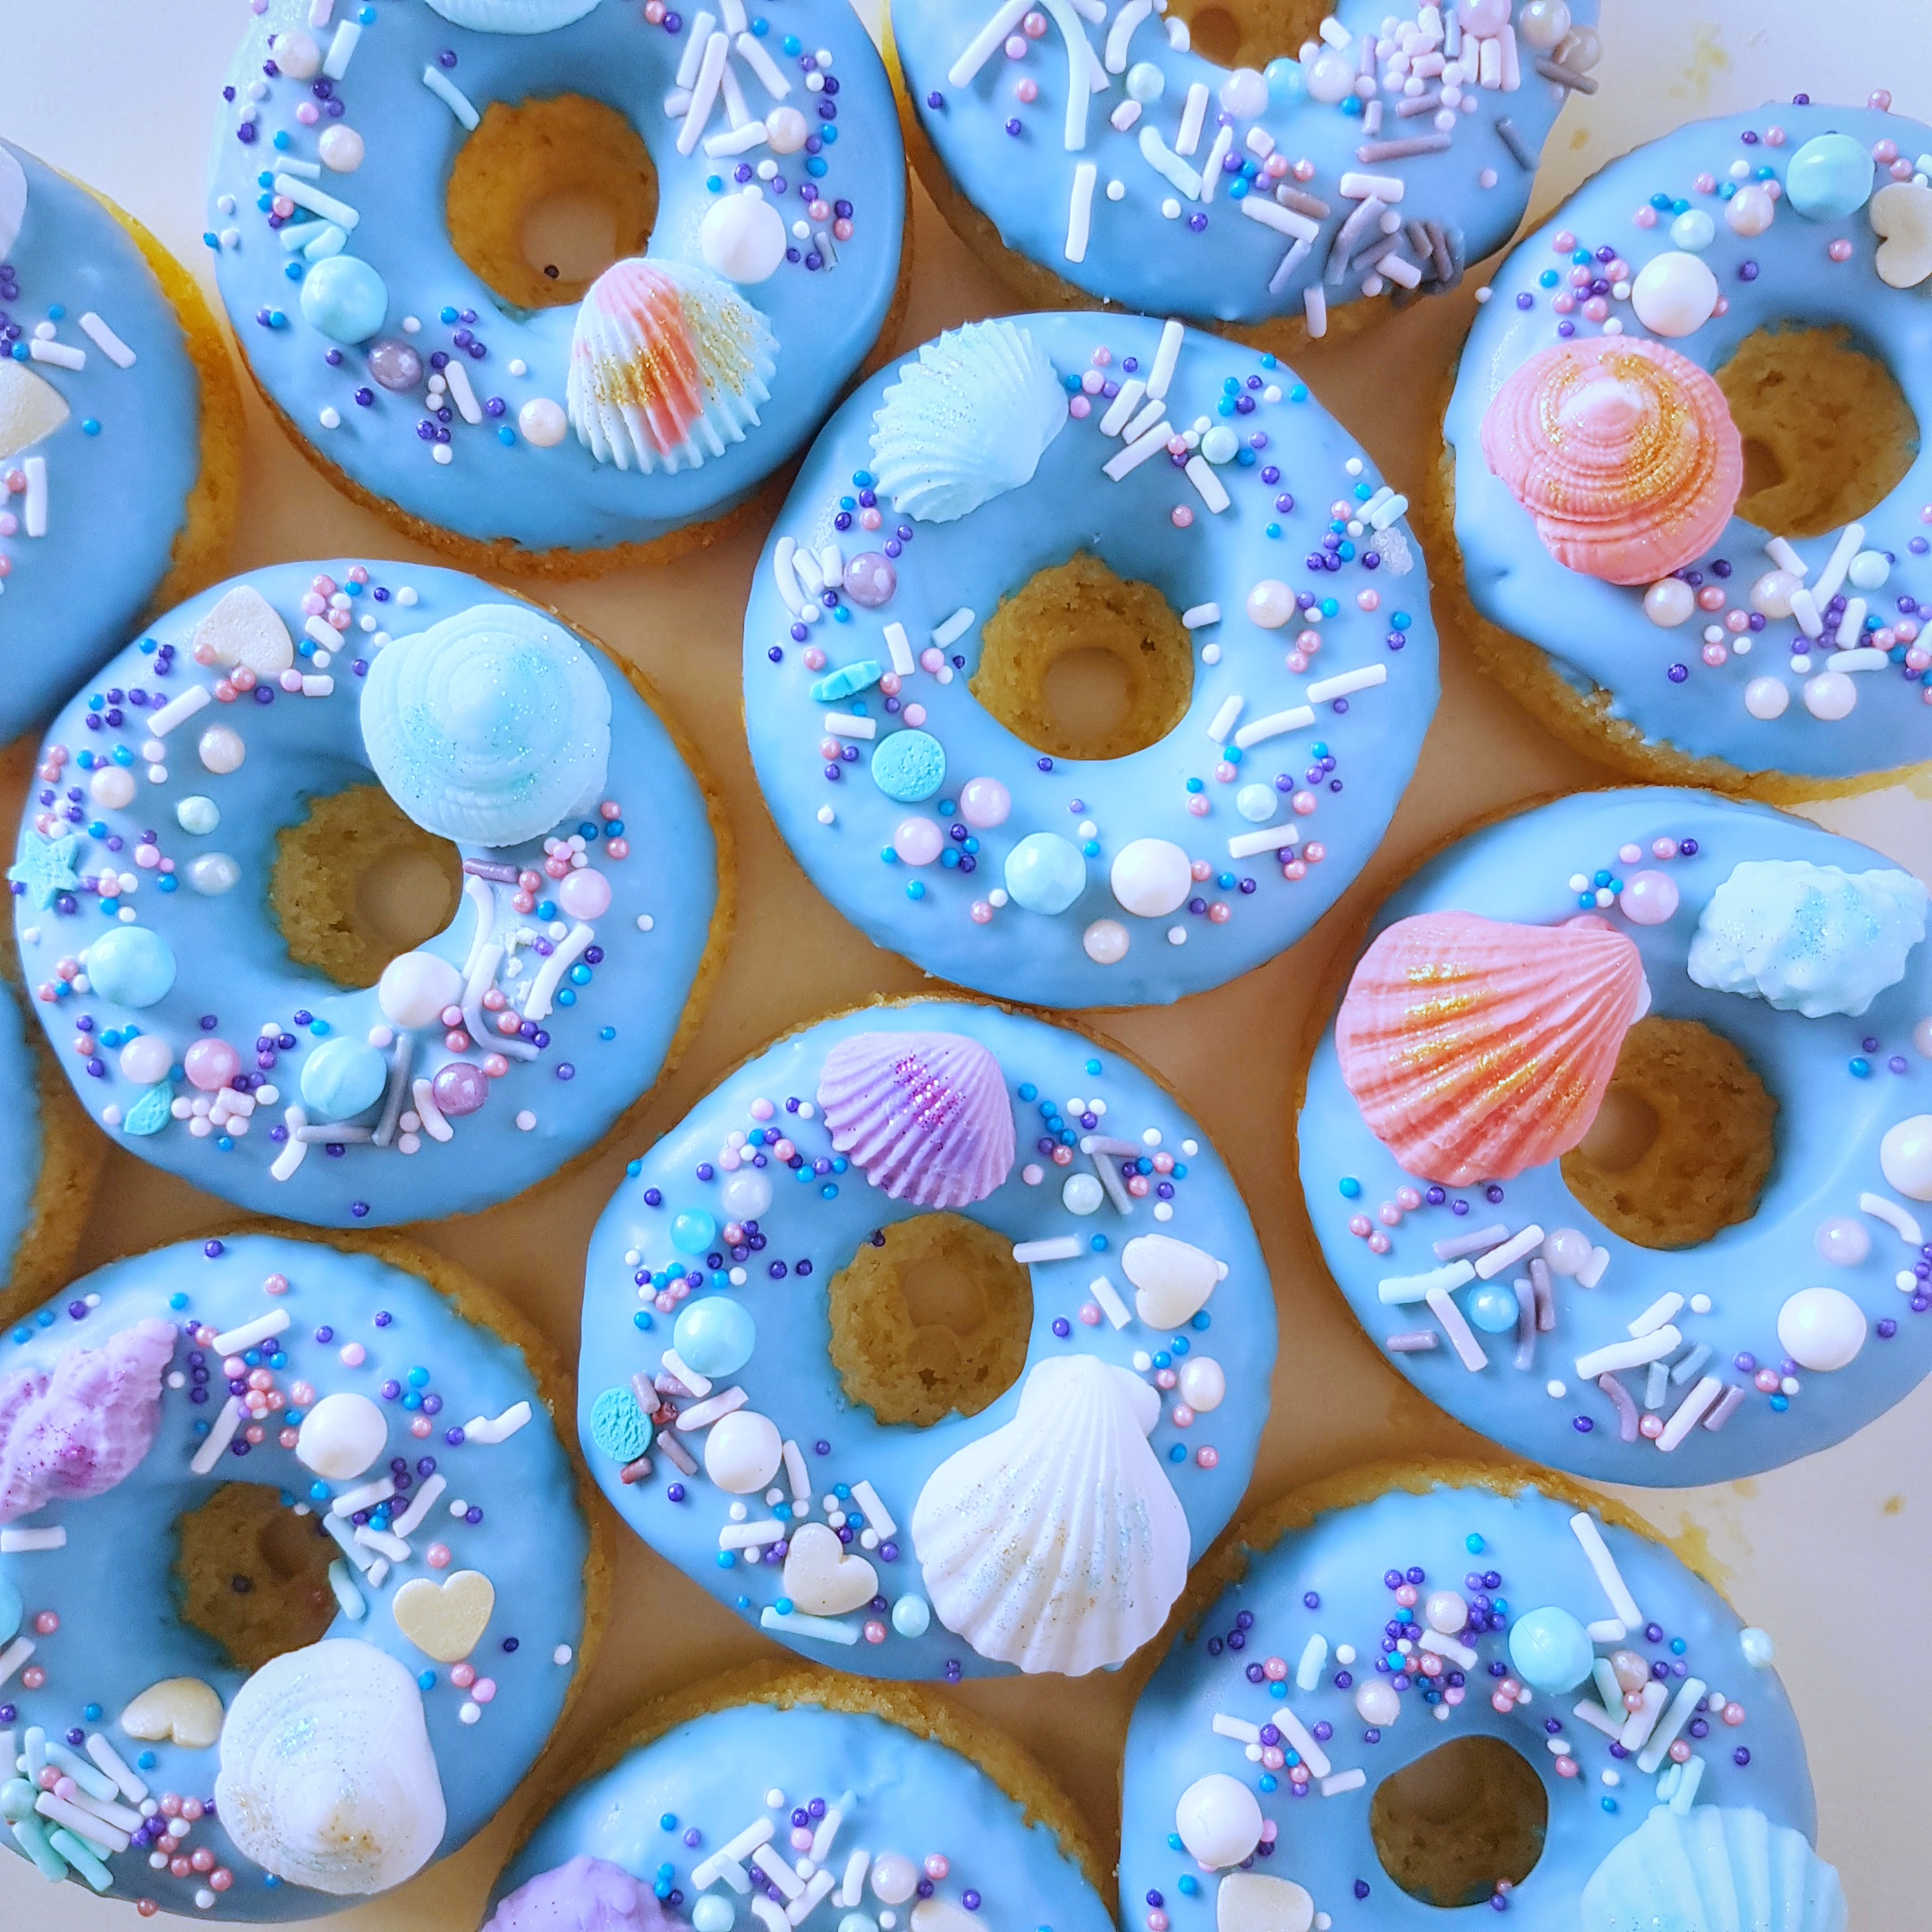 Under The Sea donuts by The Baking Experiment